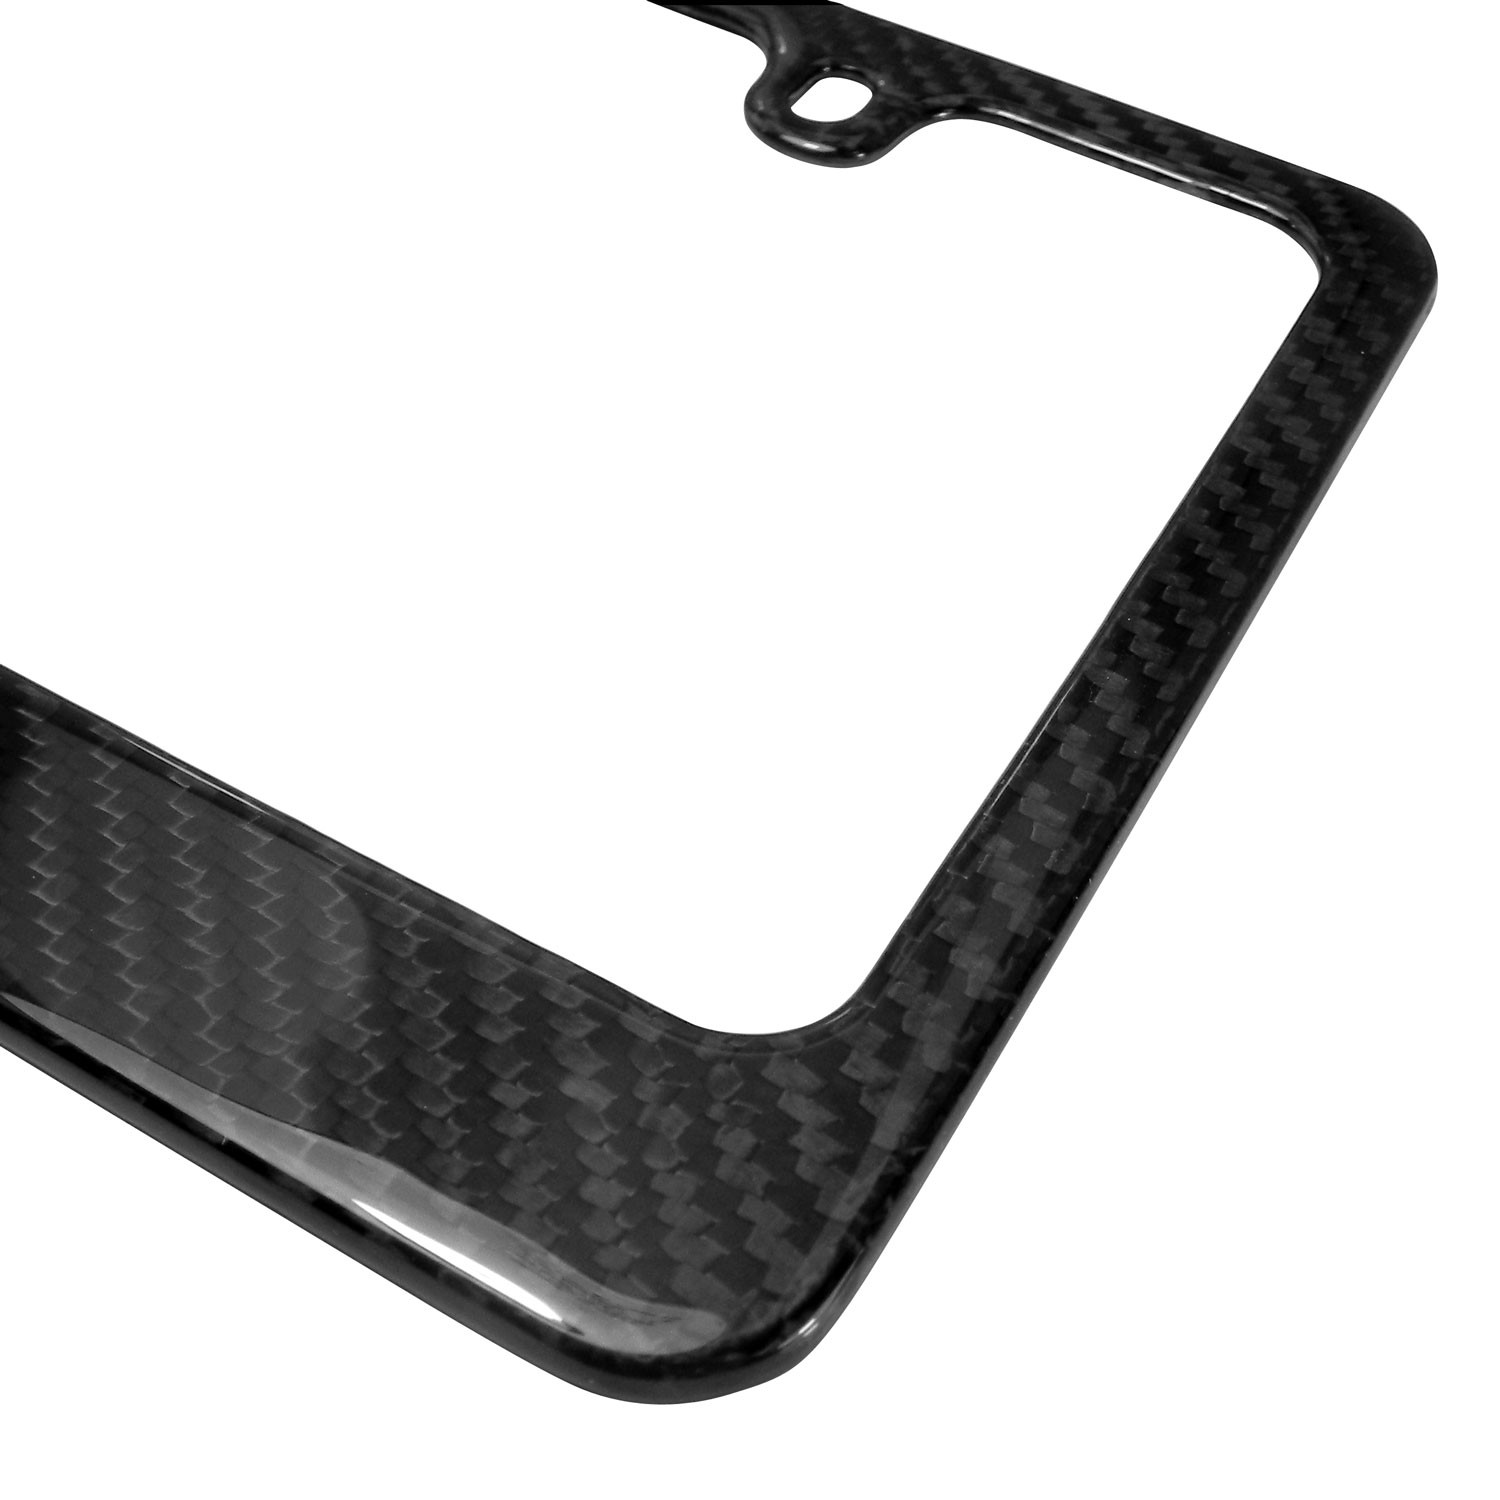 iPick Image Ford Mustang in Red Dual Logo Real Black Carbon Fiber Finish License Plate Frame Exterior Accessories Made in USA